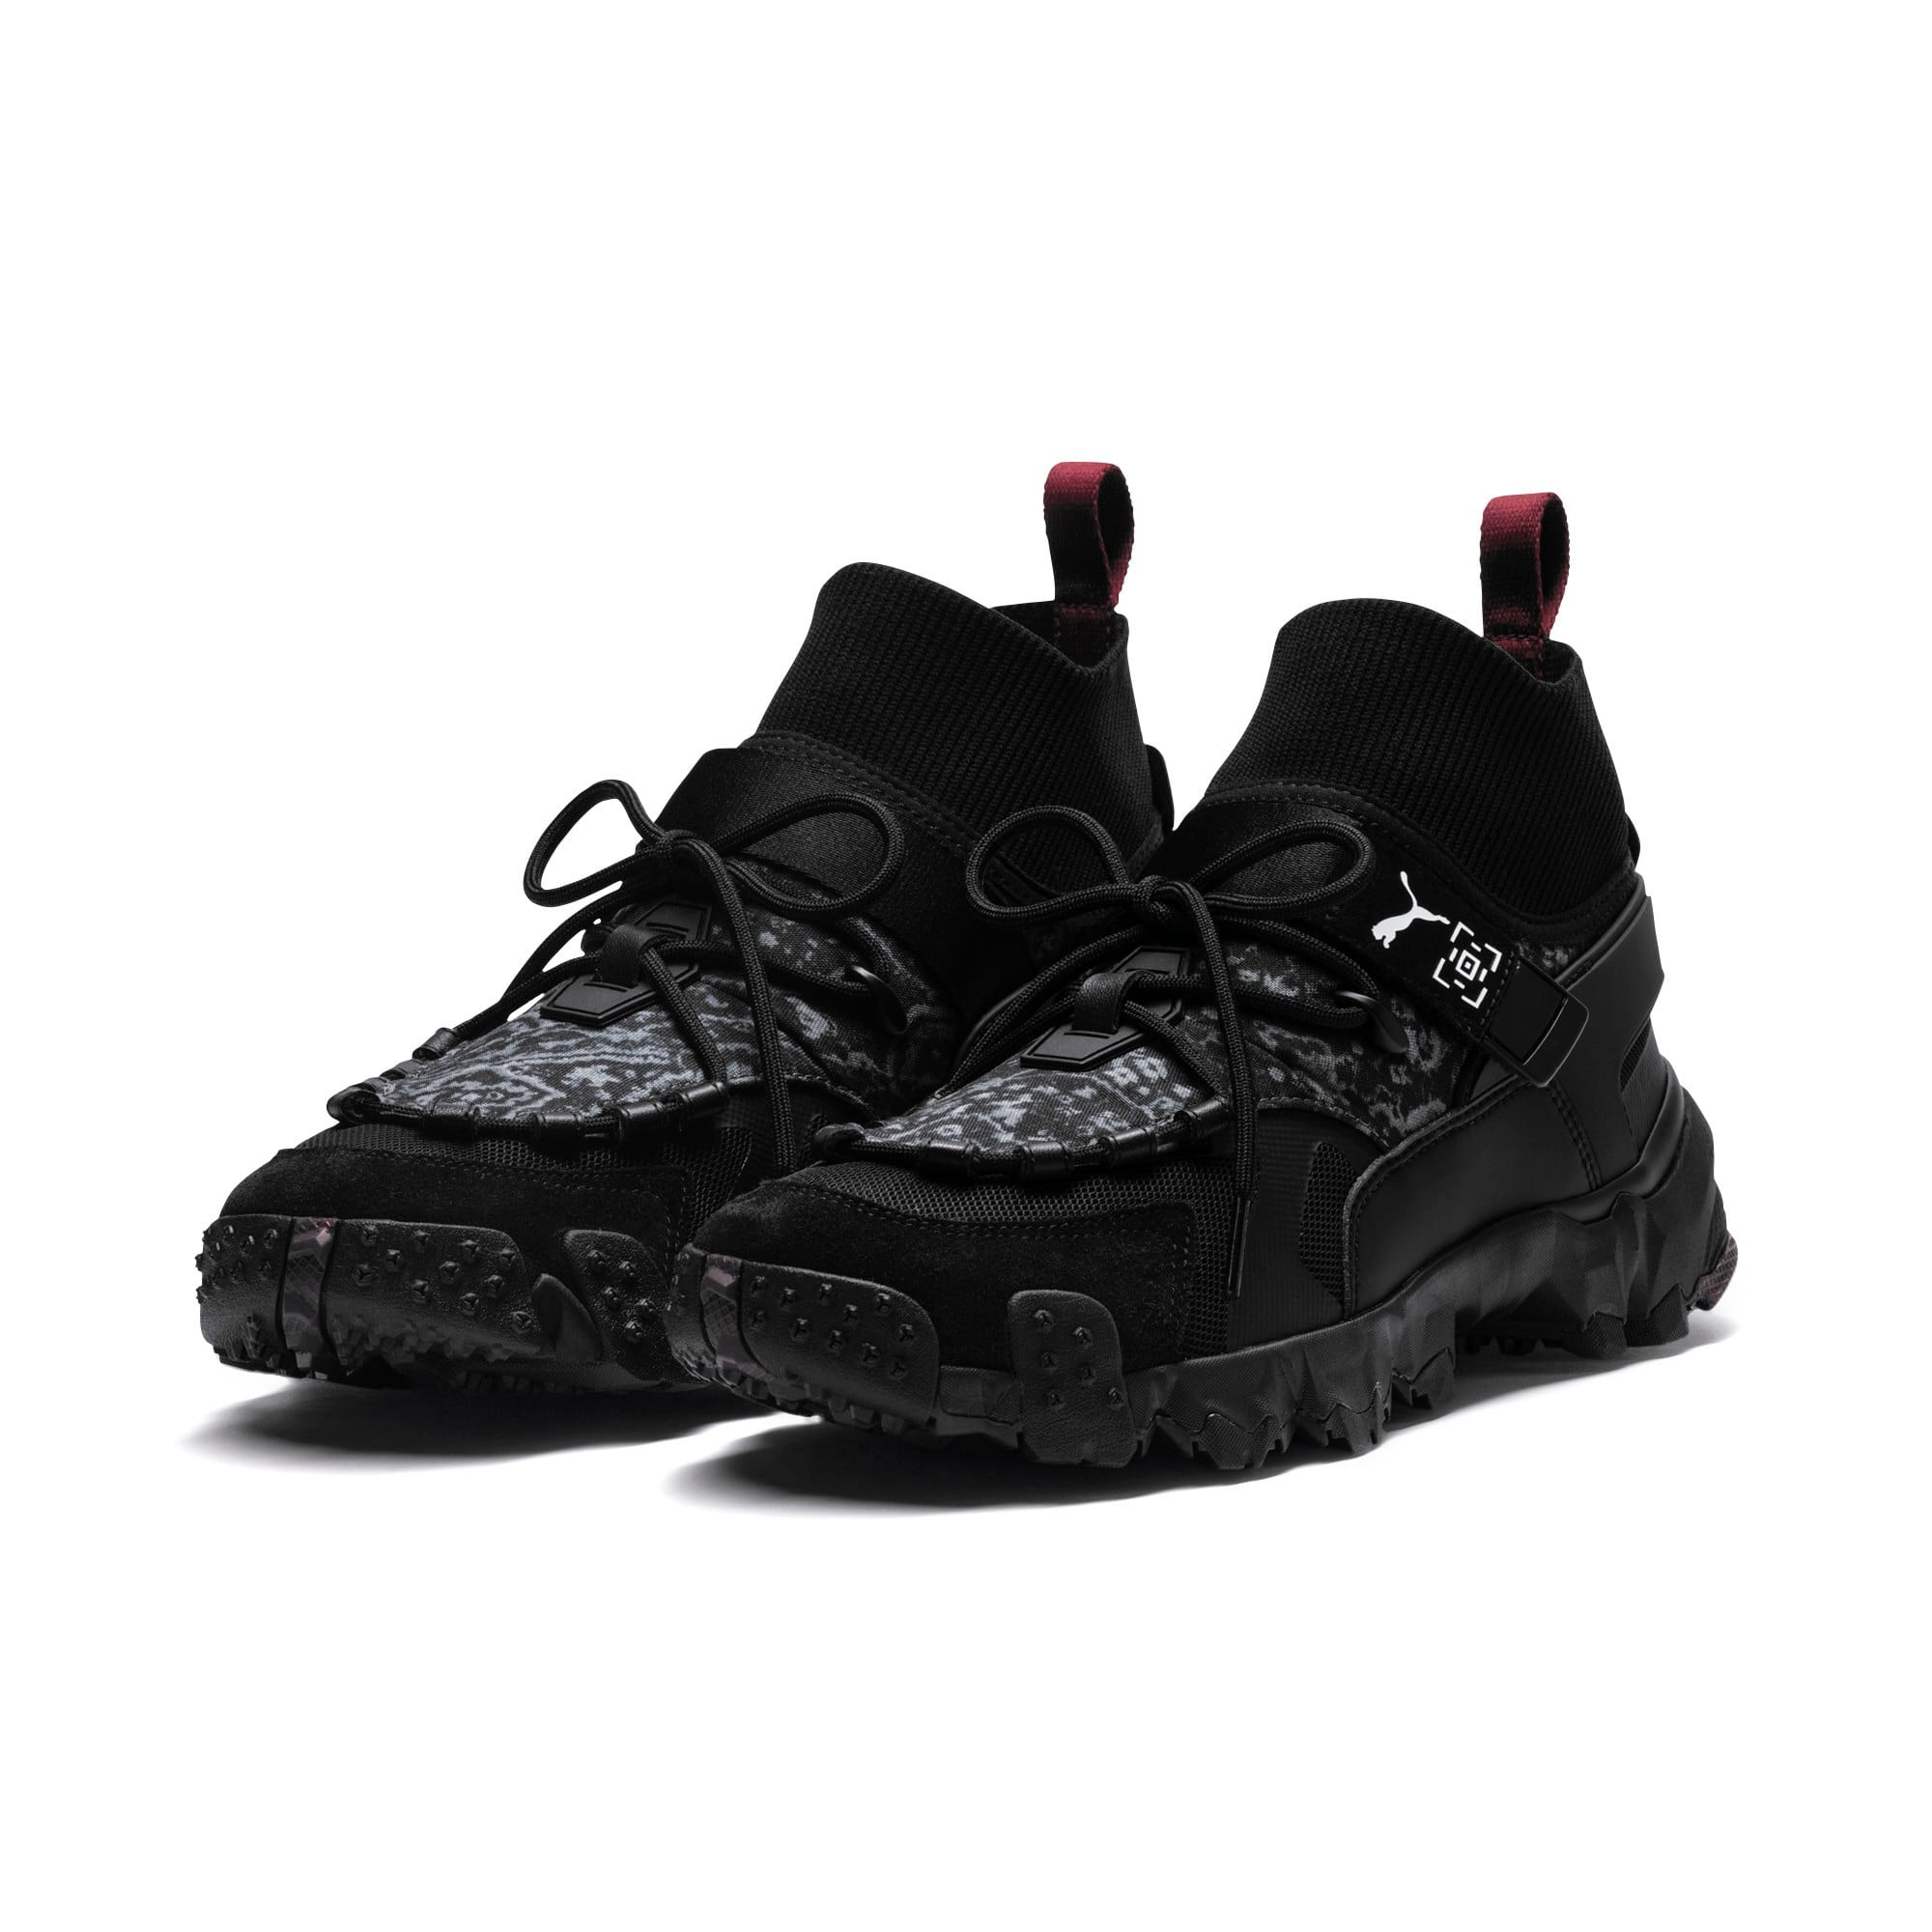 Thumbnail 3 of PUMA x LES BENJAMINS Trailfox Schuhe, Puma Black, medium